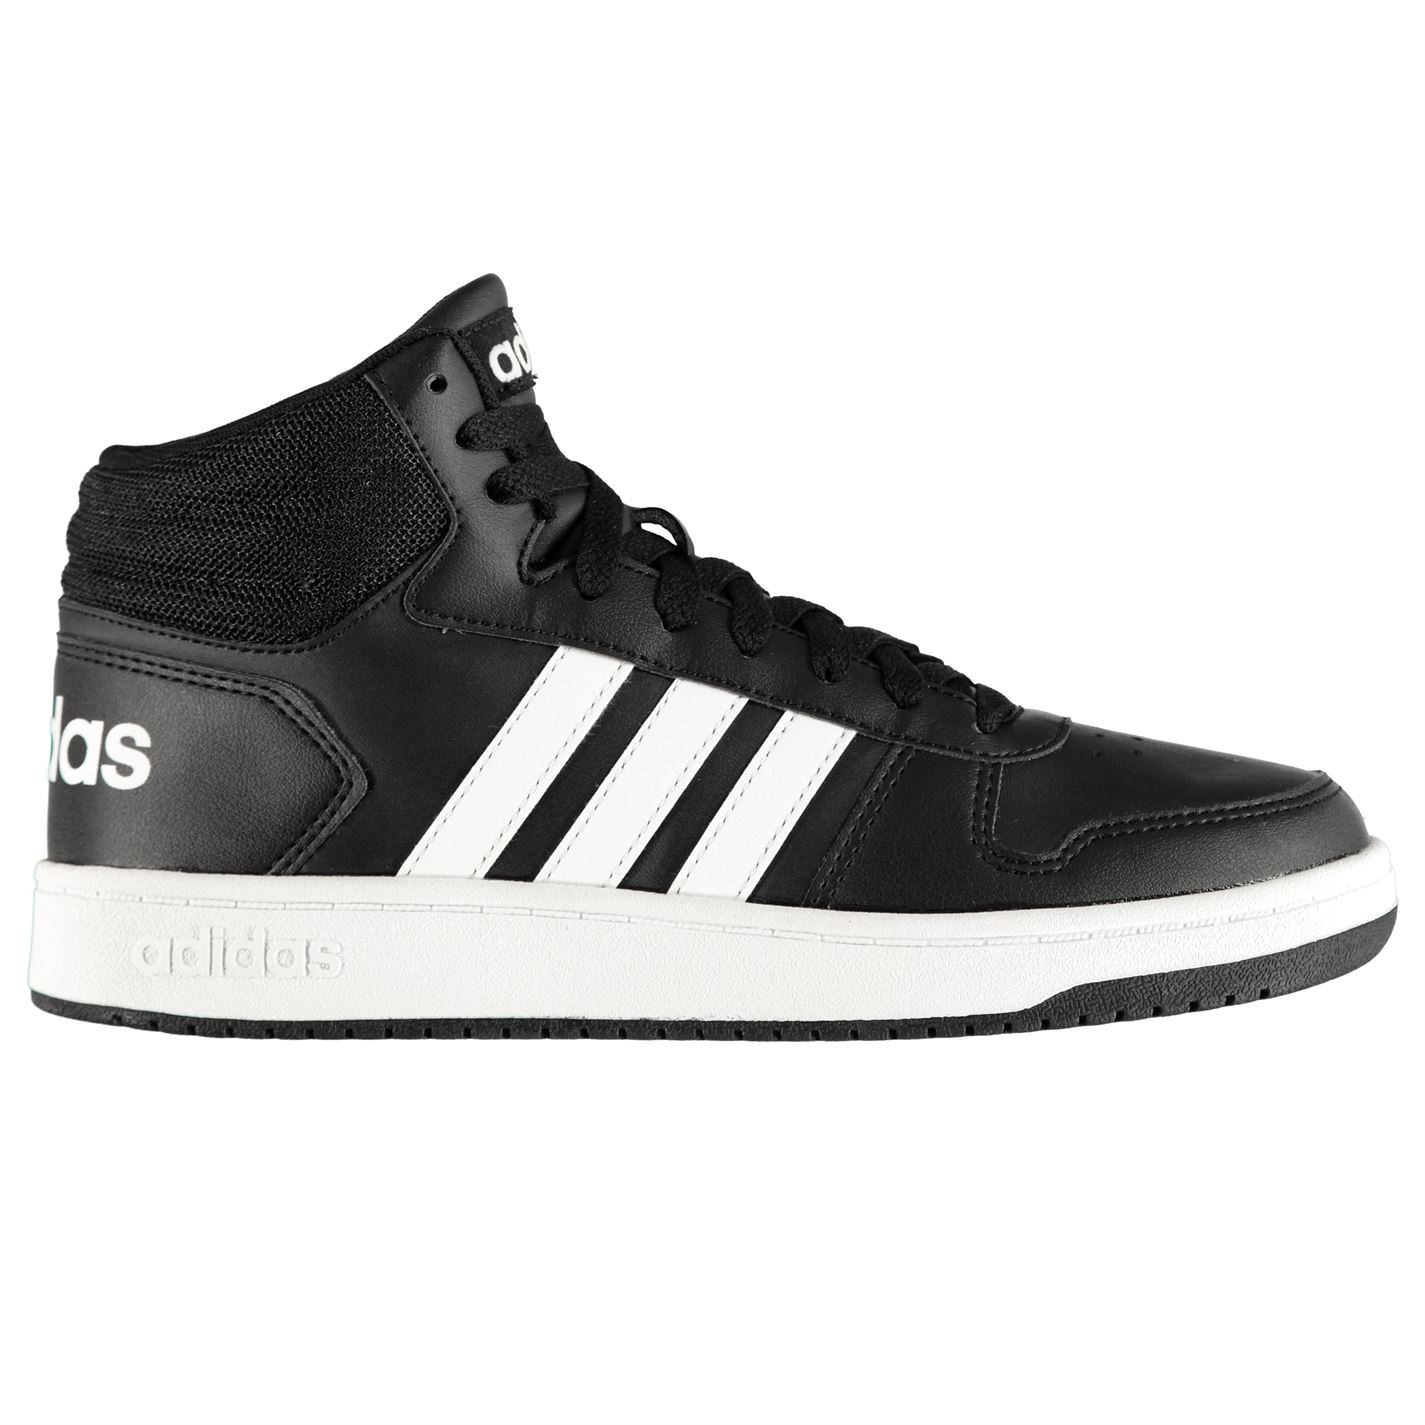 Adidas-Hoops-Mi-Montantes-Homme-athleisure-Chaussures-Baskets-Chaussures miniature 5